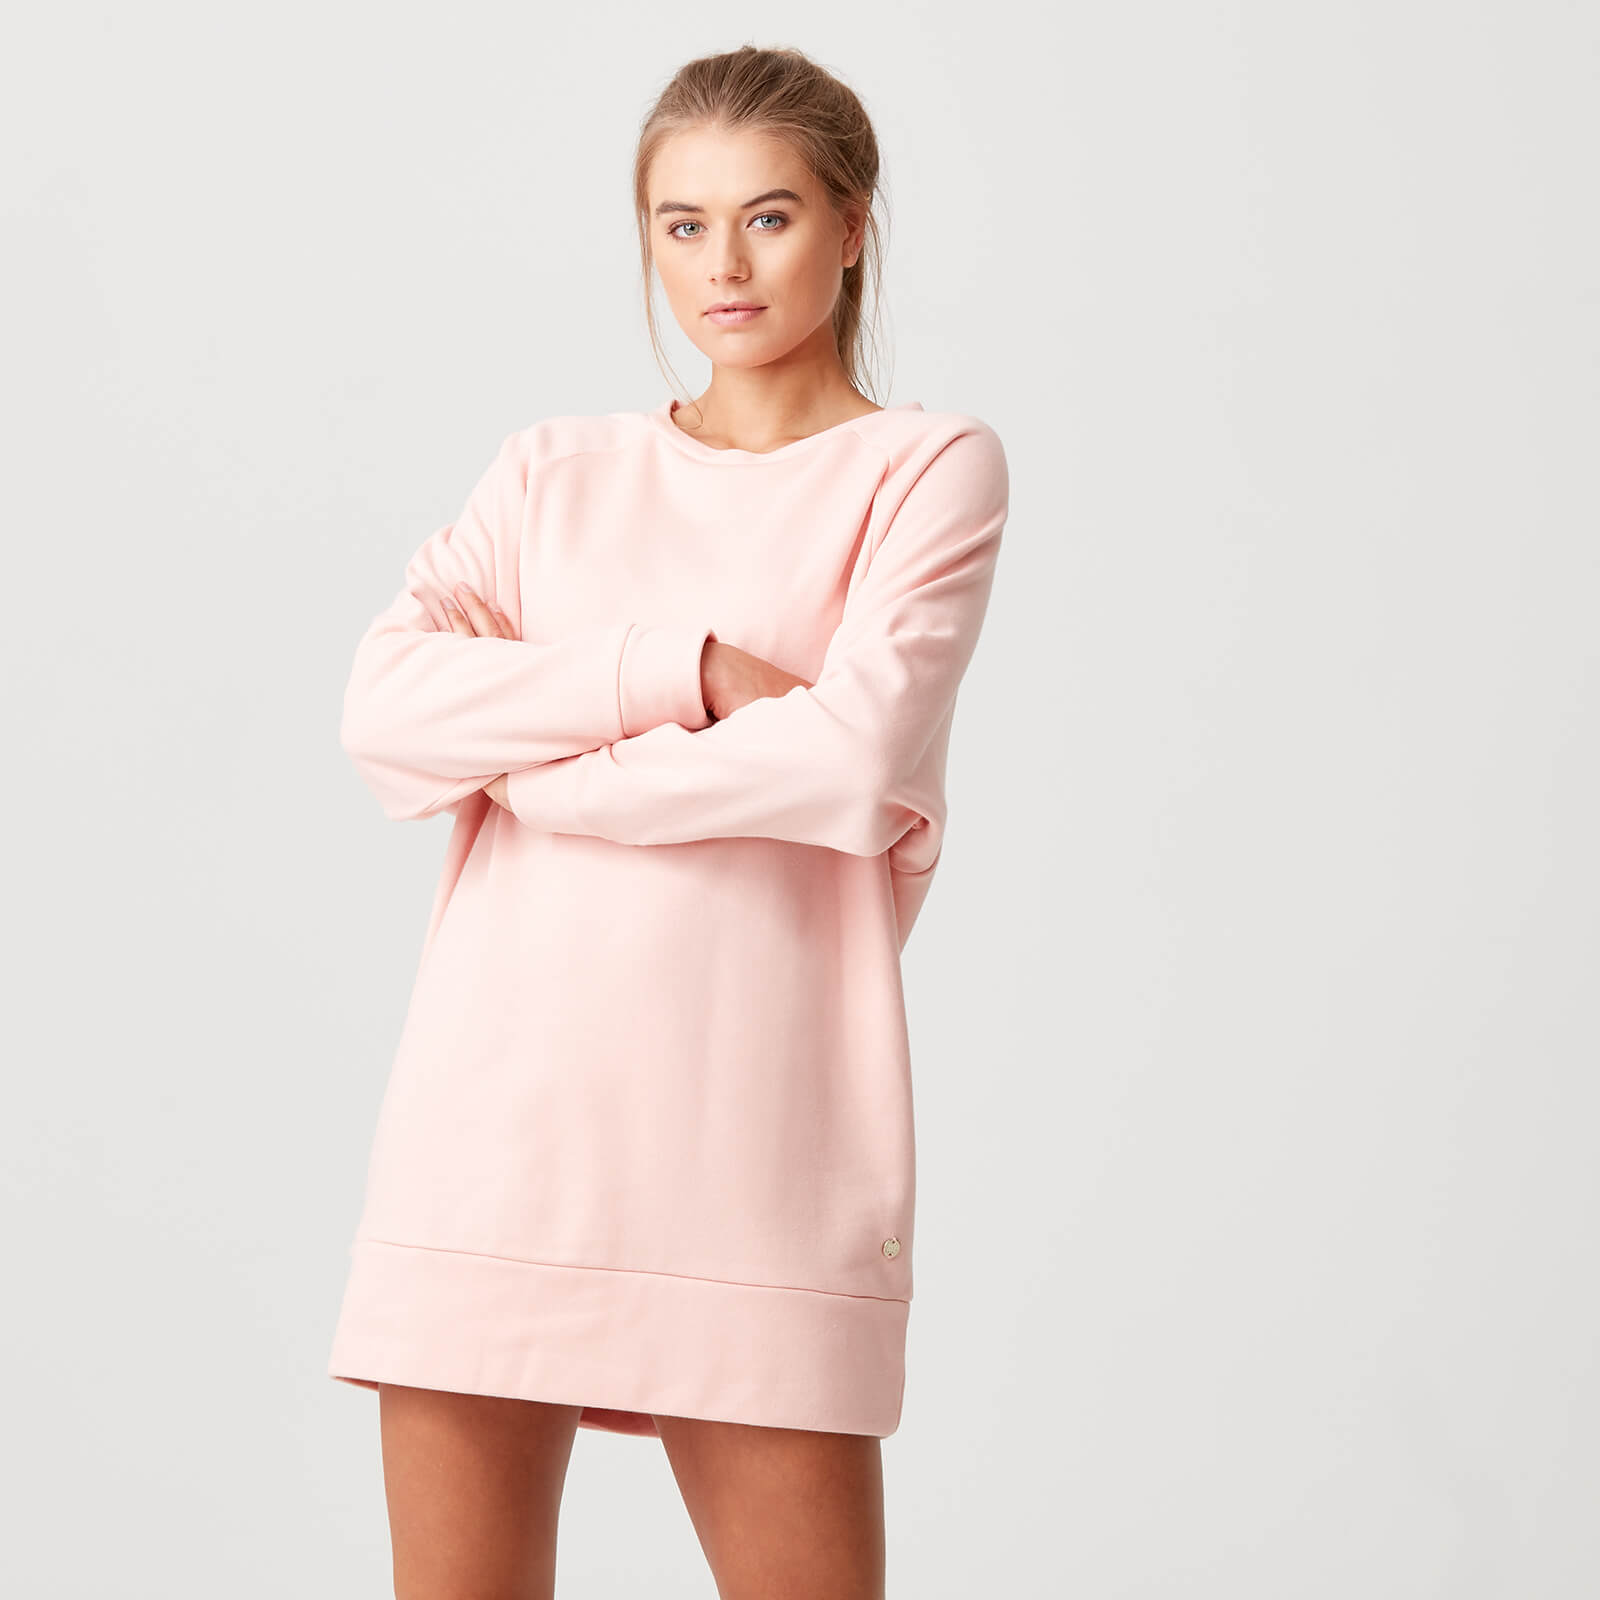 Luxe Lounge Sweater Dress - Blush - XS